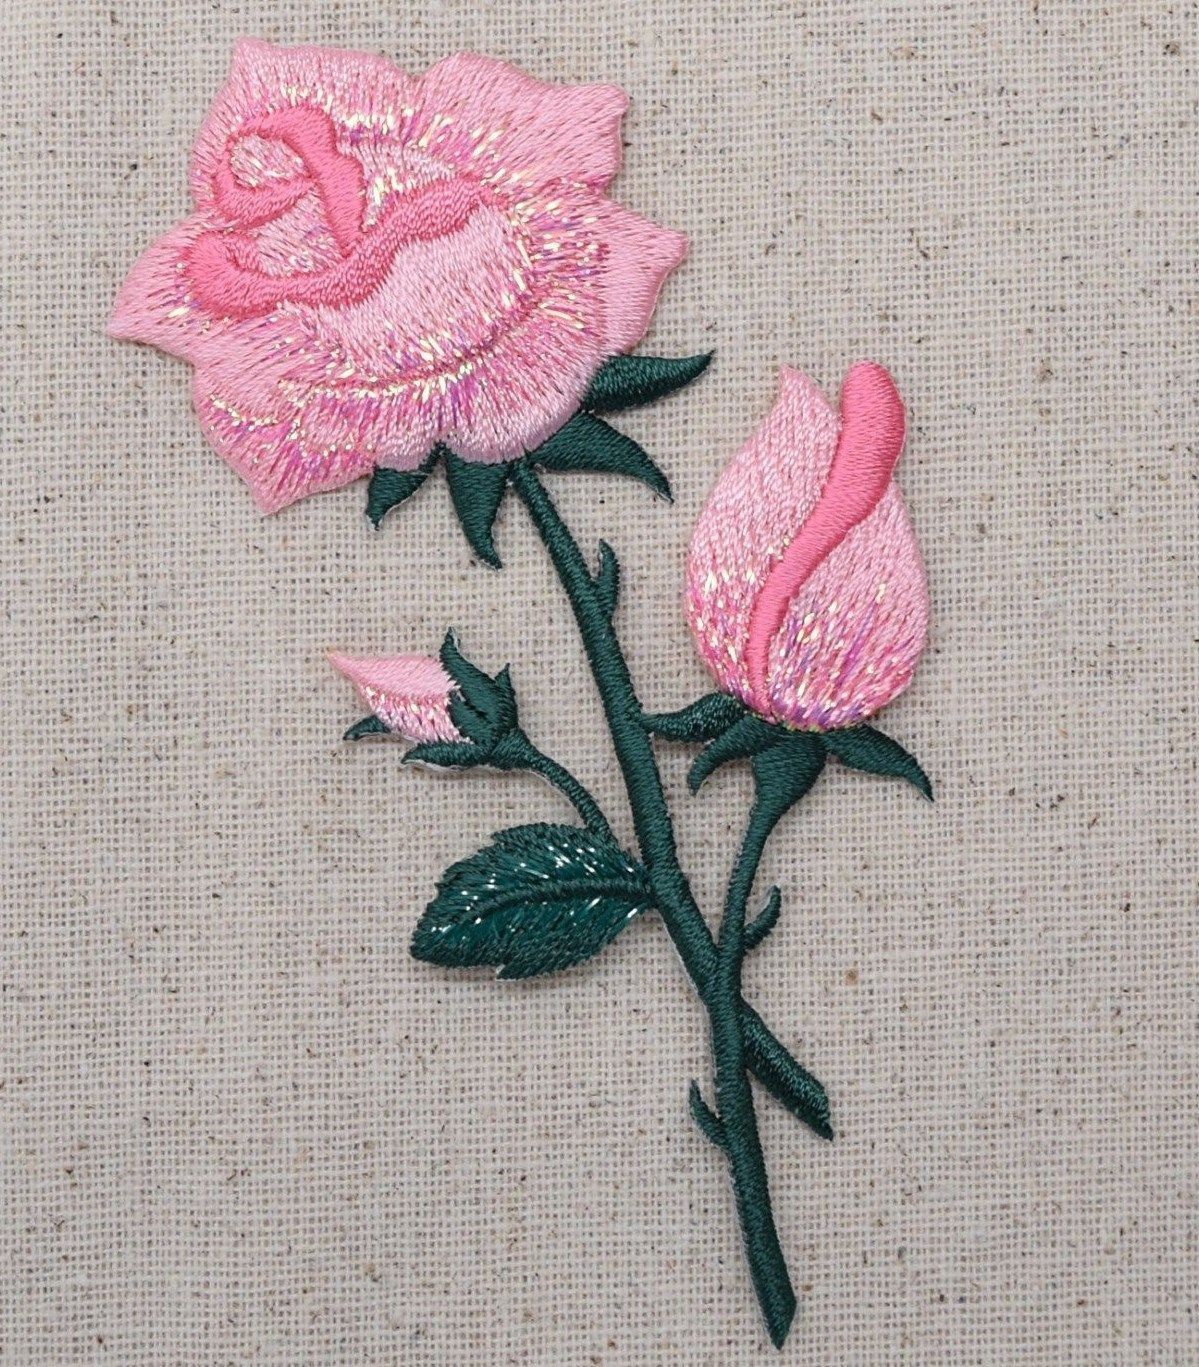 """Rose Flower Iron on Applique High quality, detailed embroidery applique. Can be sewn or ironed on. Great for hats, bags, clothing, and more! Size is approx. 2-1/4"""" x 4-3/4"""" or 5.7cm x 12.06"""